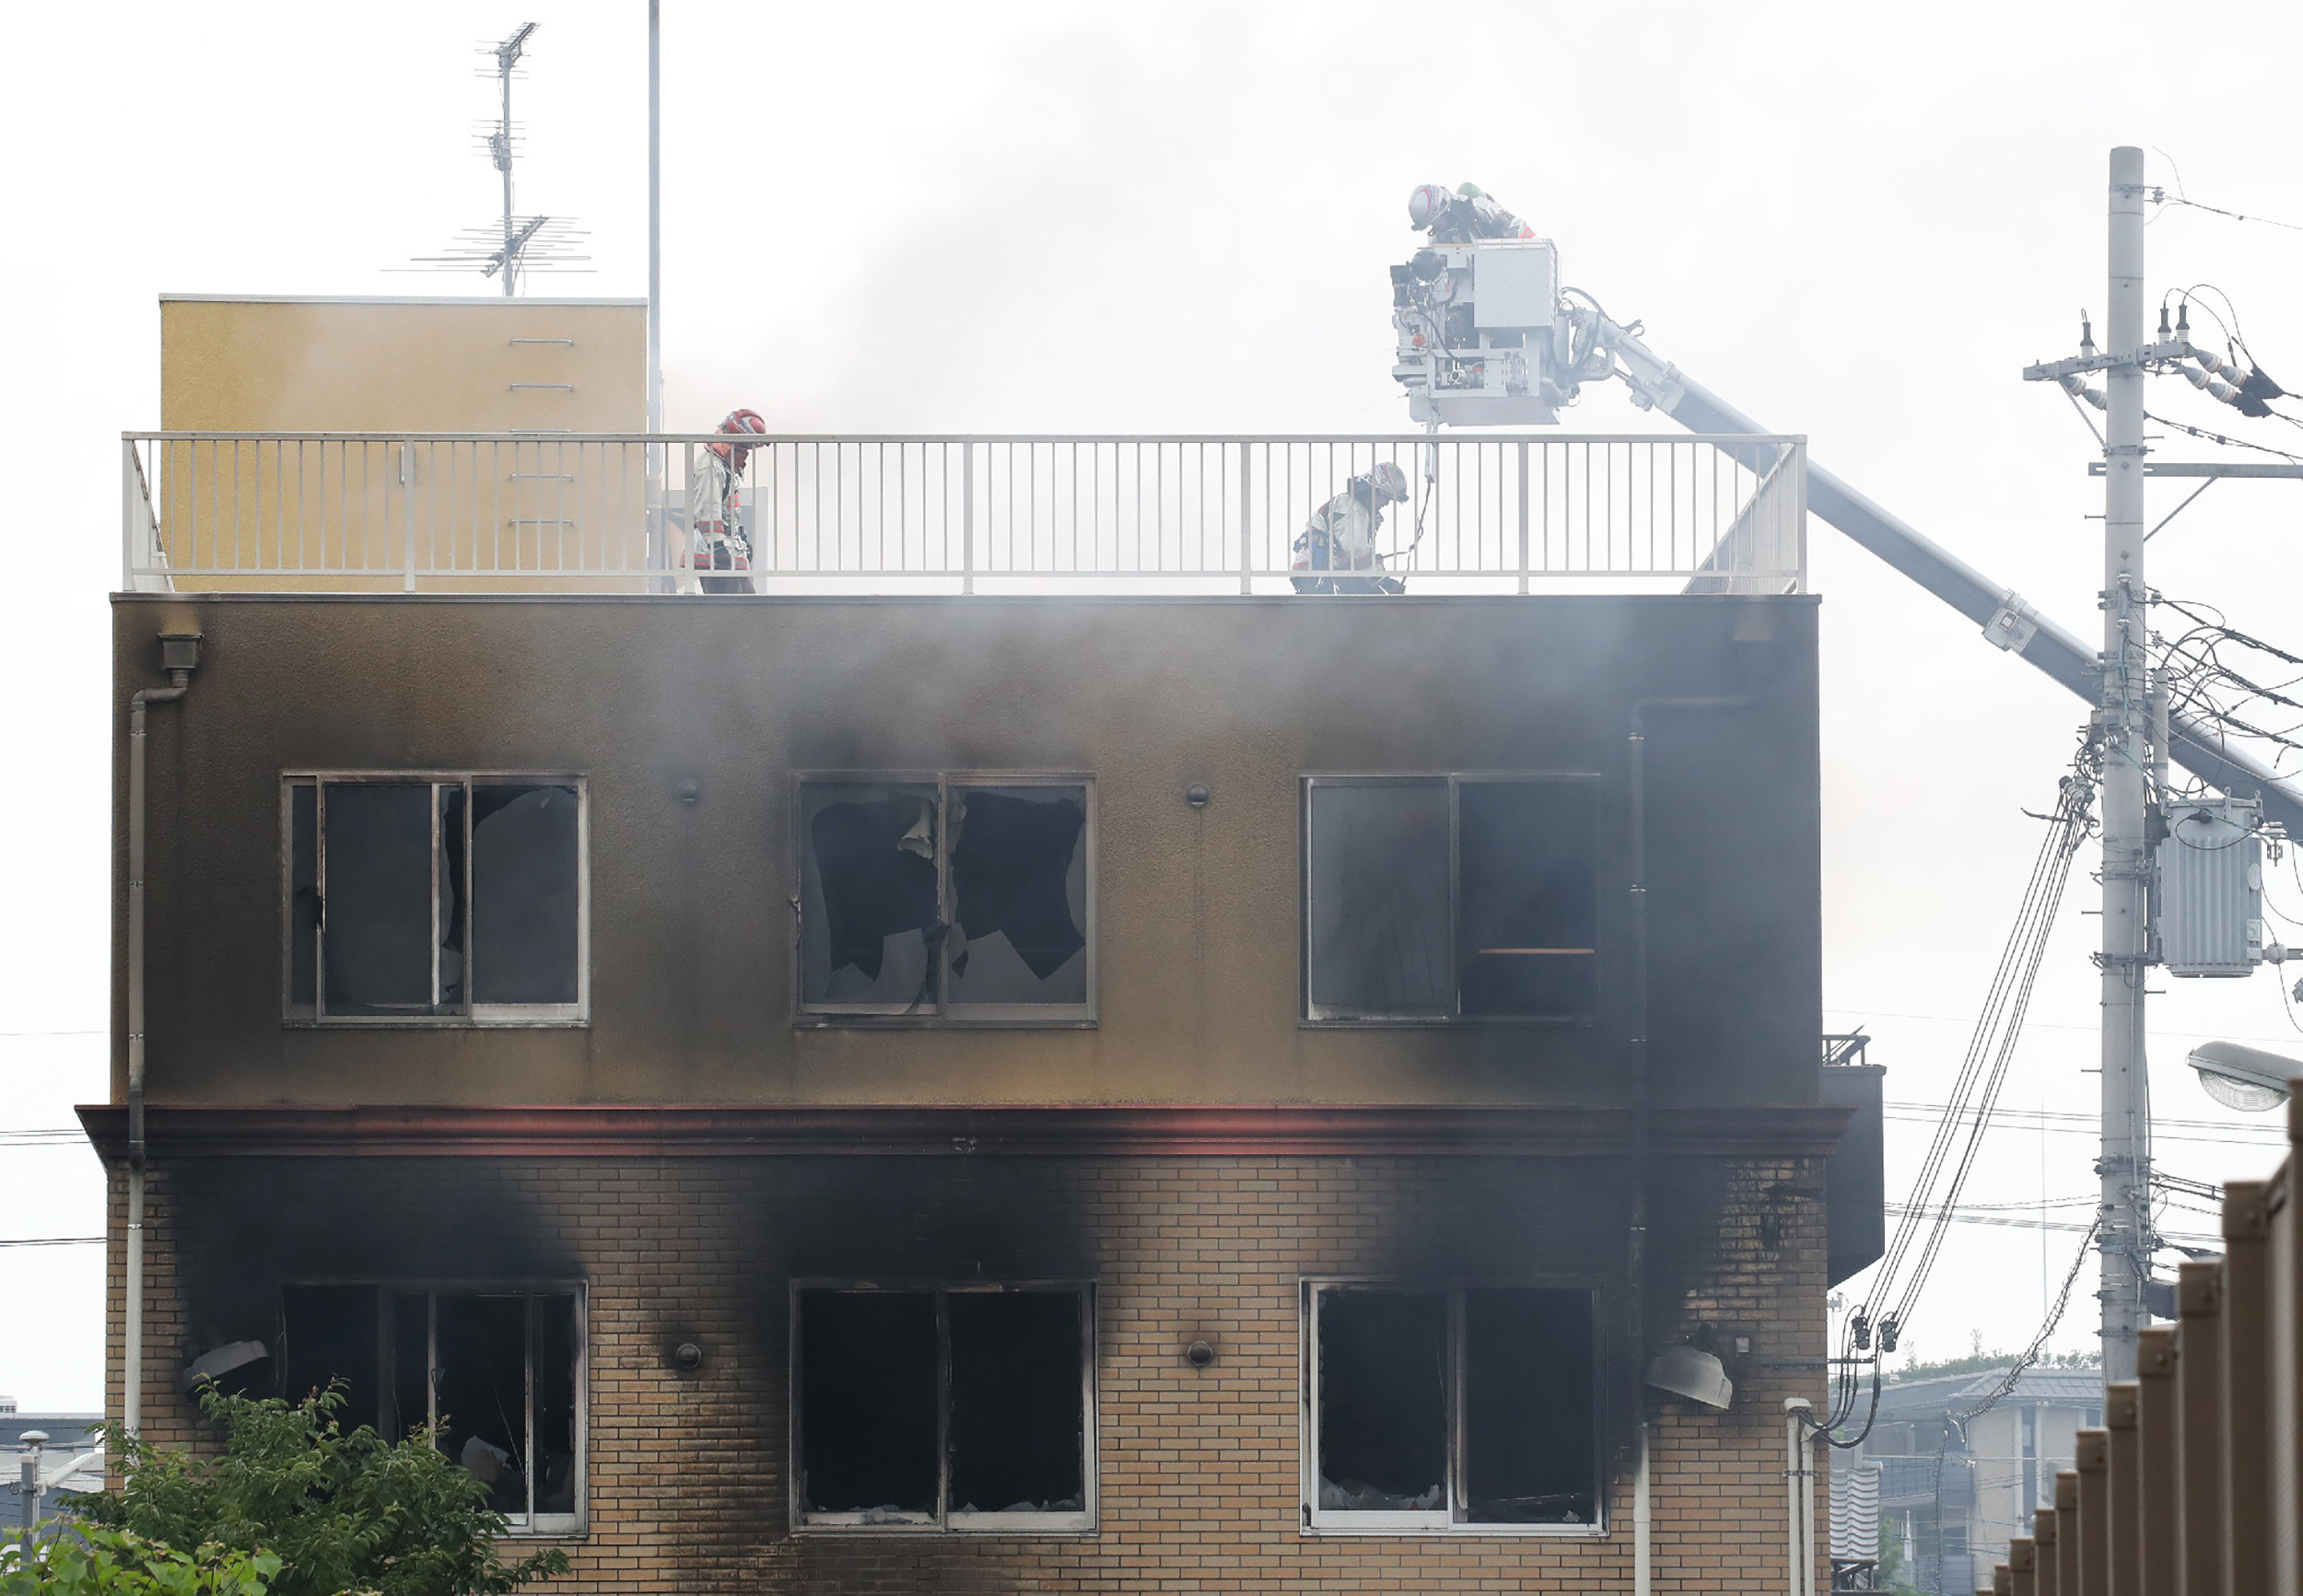 Firefighters and rescue personnel search an animation company building after a fire broke out in Kyoto on July 18, 2019. - At least 24 people are feared dead in a suspected arson attack on the animation company in the Japanese city of Kyoto on July 18, a fire department official told AFP. (Photo by JIJI PRESS/AFP/Getty Images)